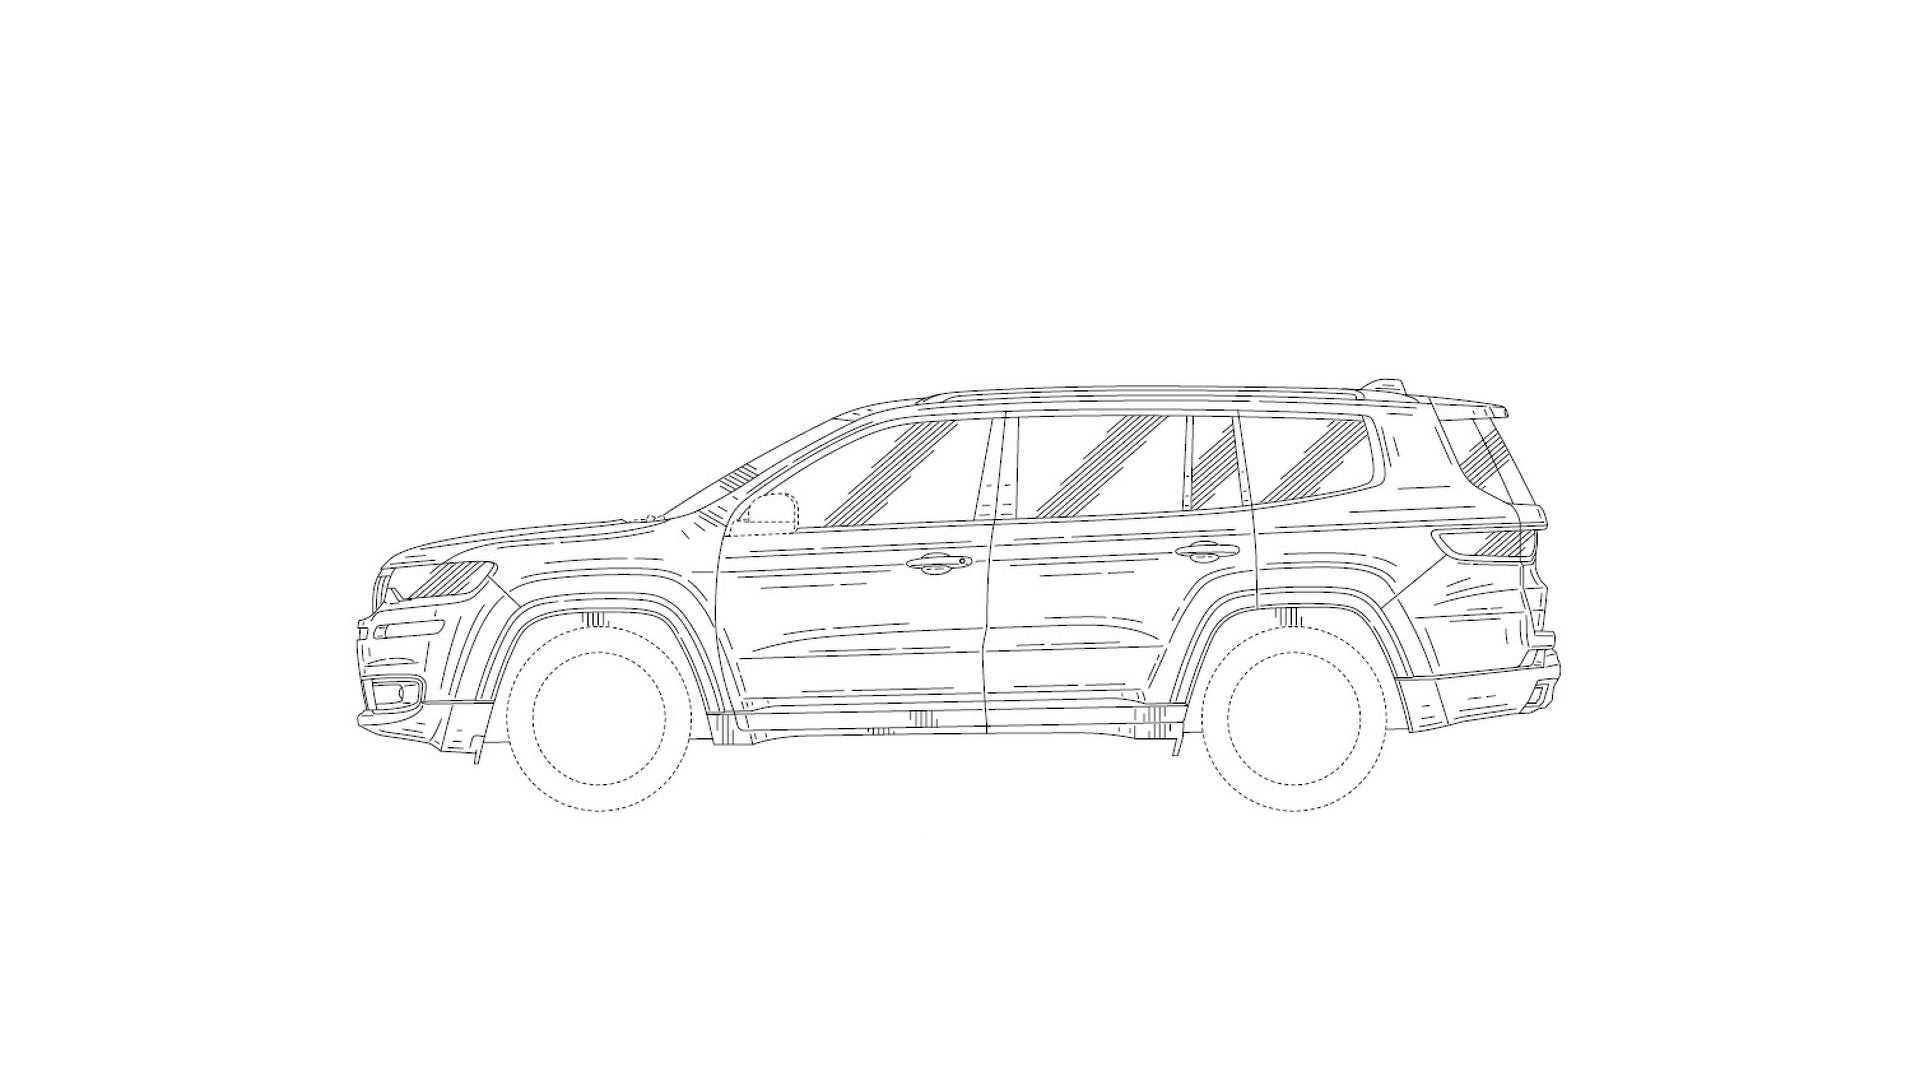 Jeep seven-seat SUV patent drawing